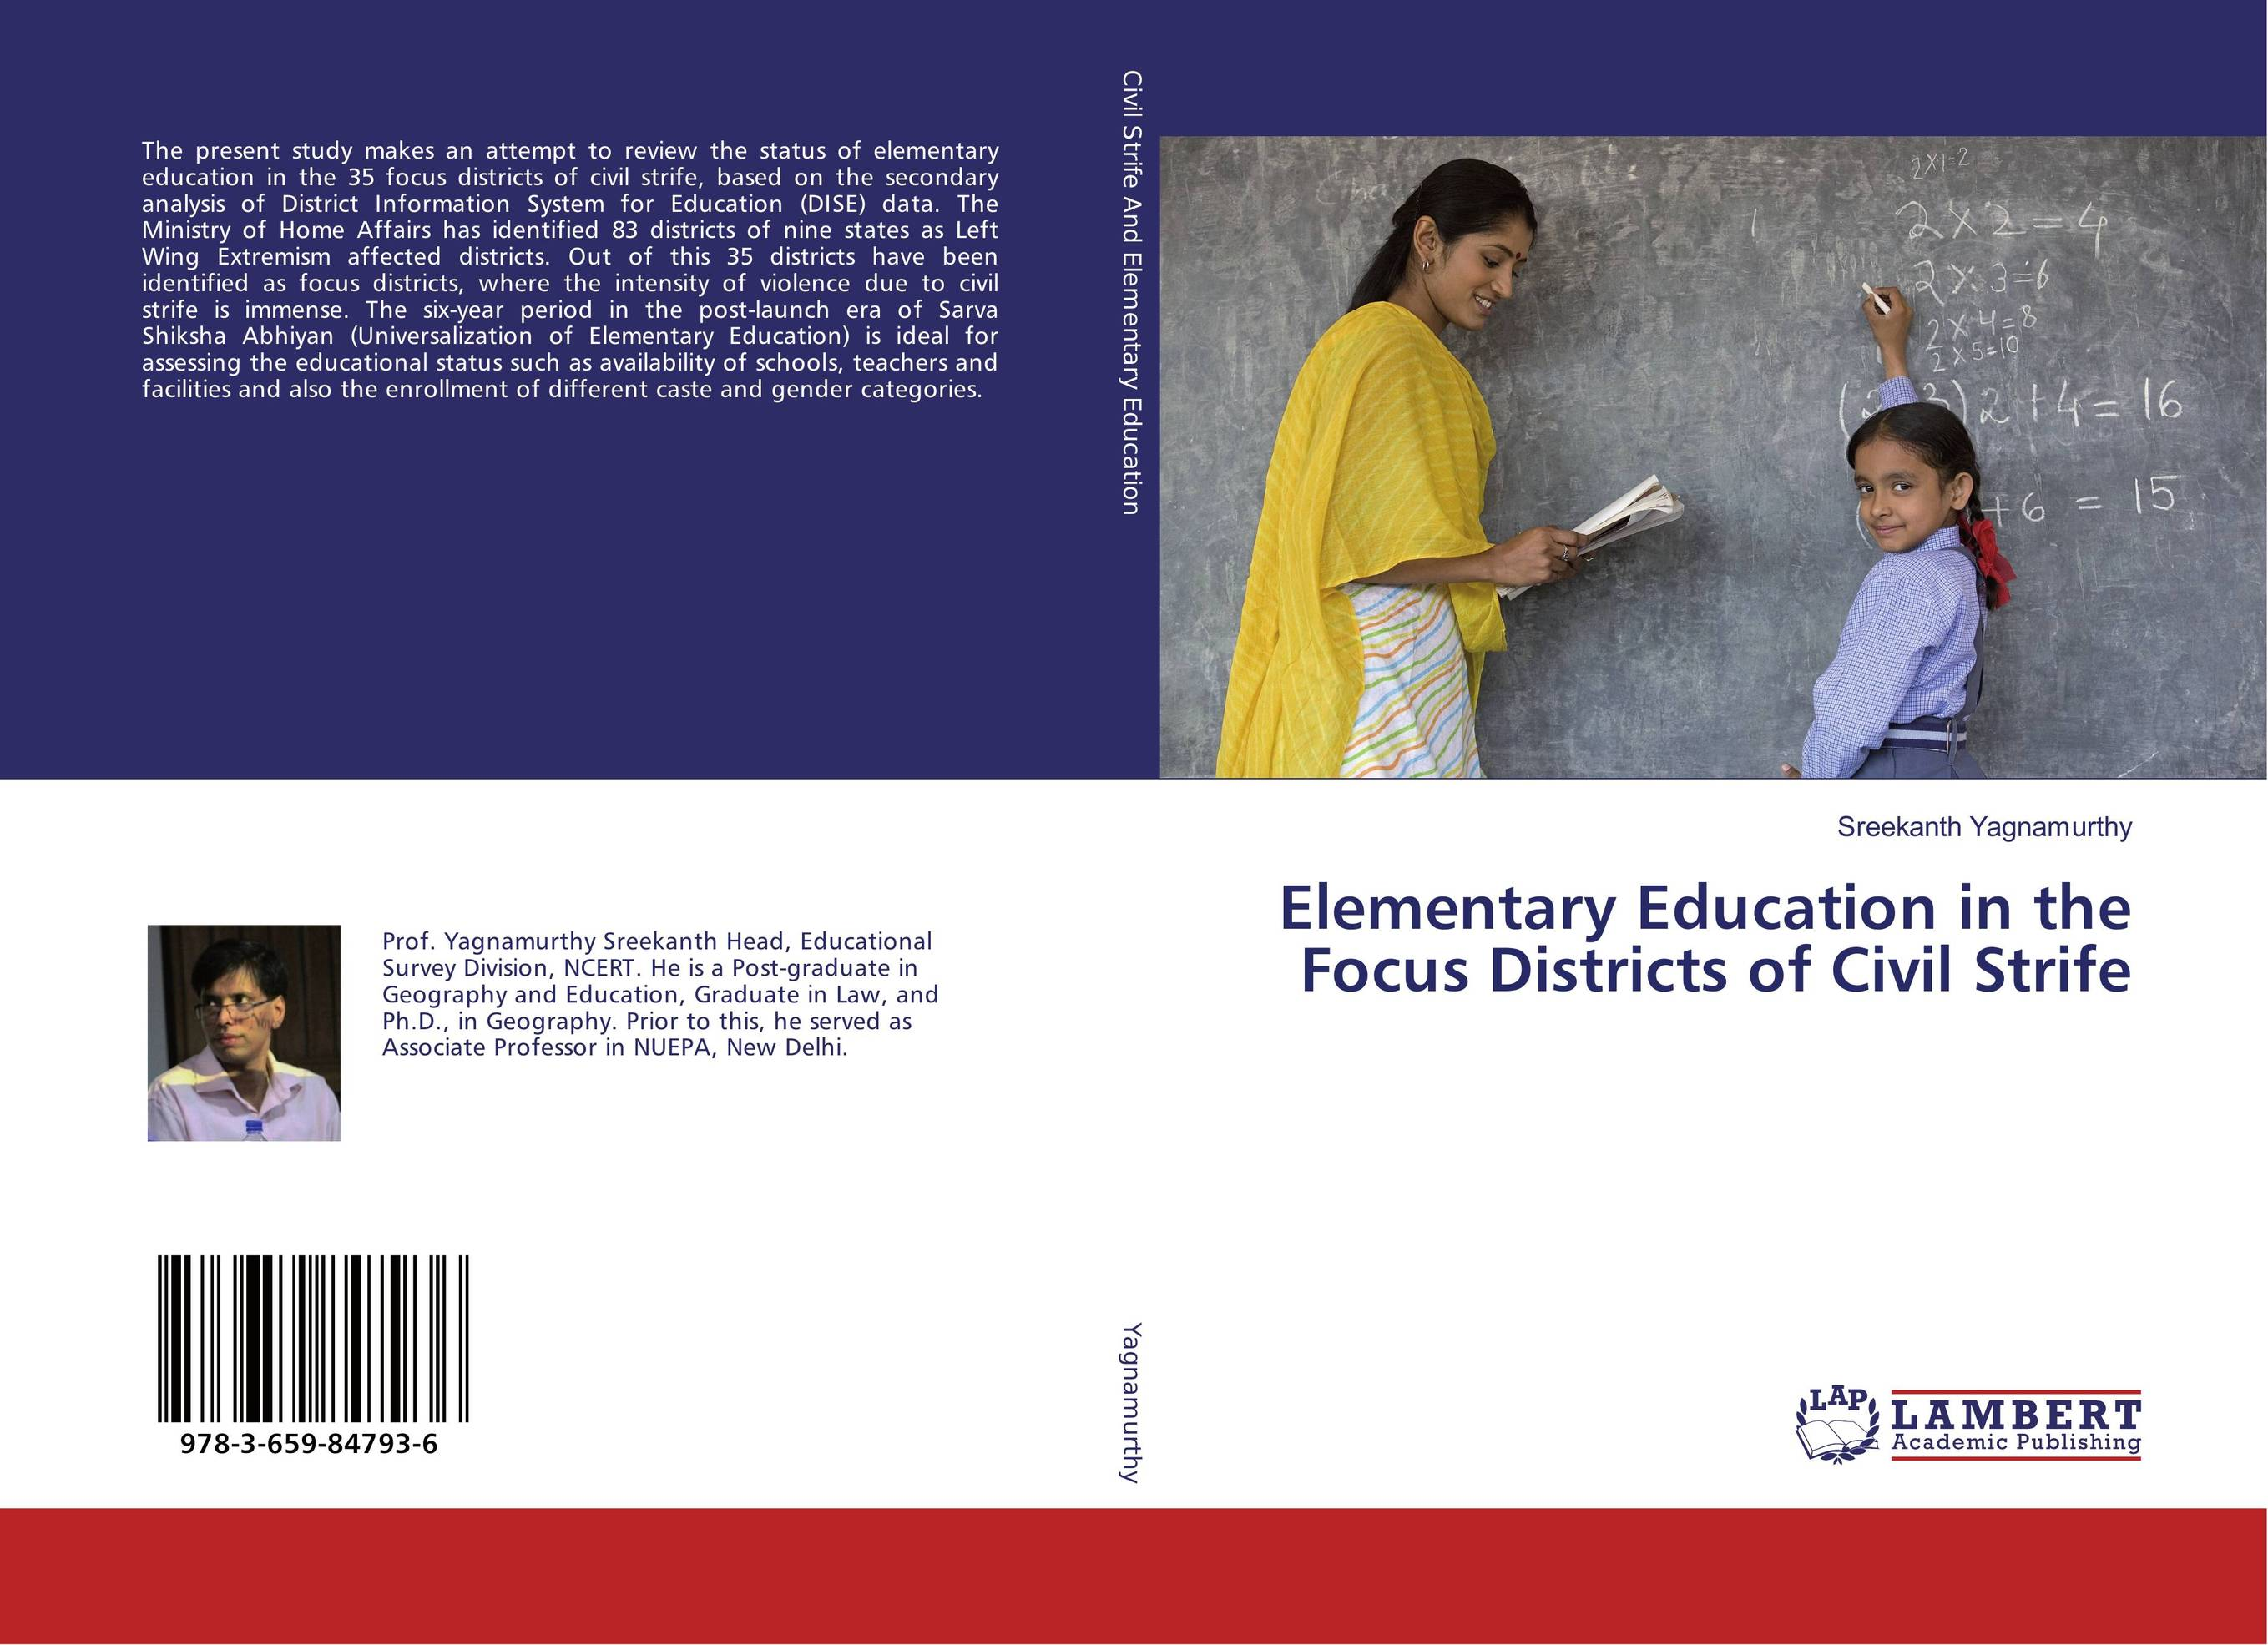 Elementary Education in the Focus Districts of Civil Strife the lighye caste system